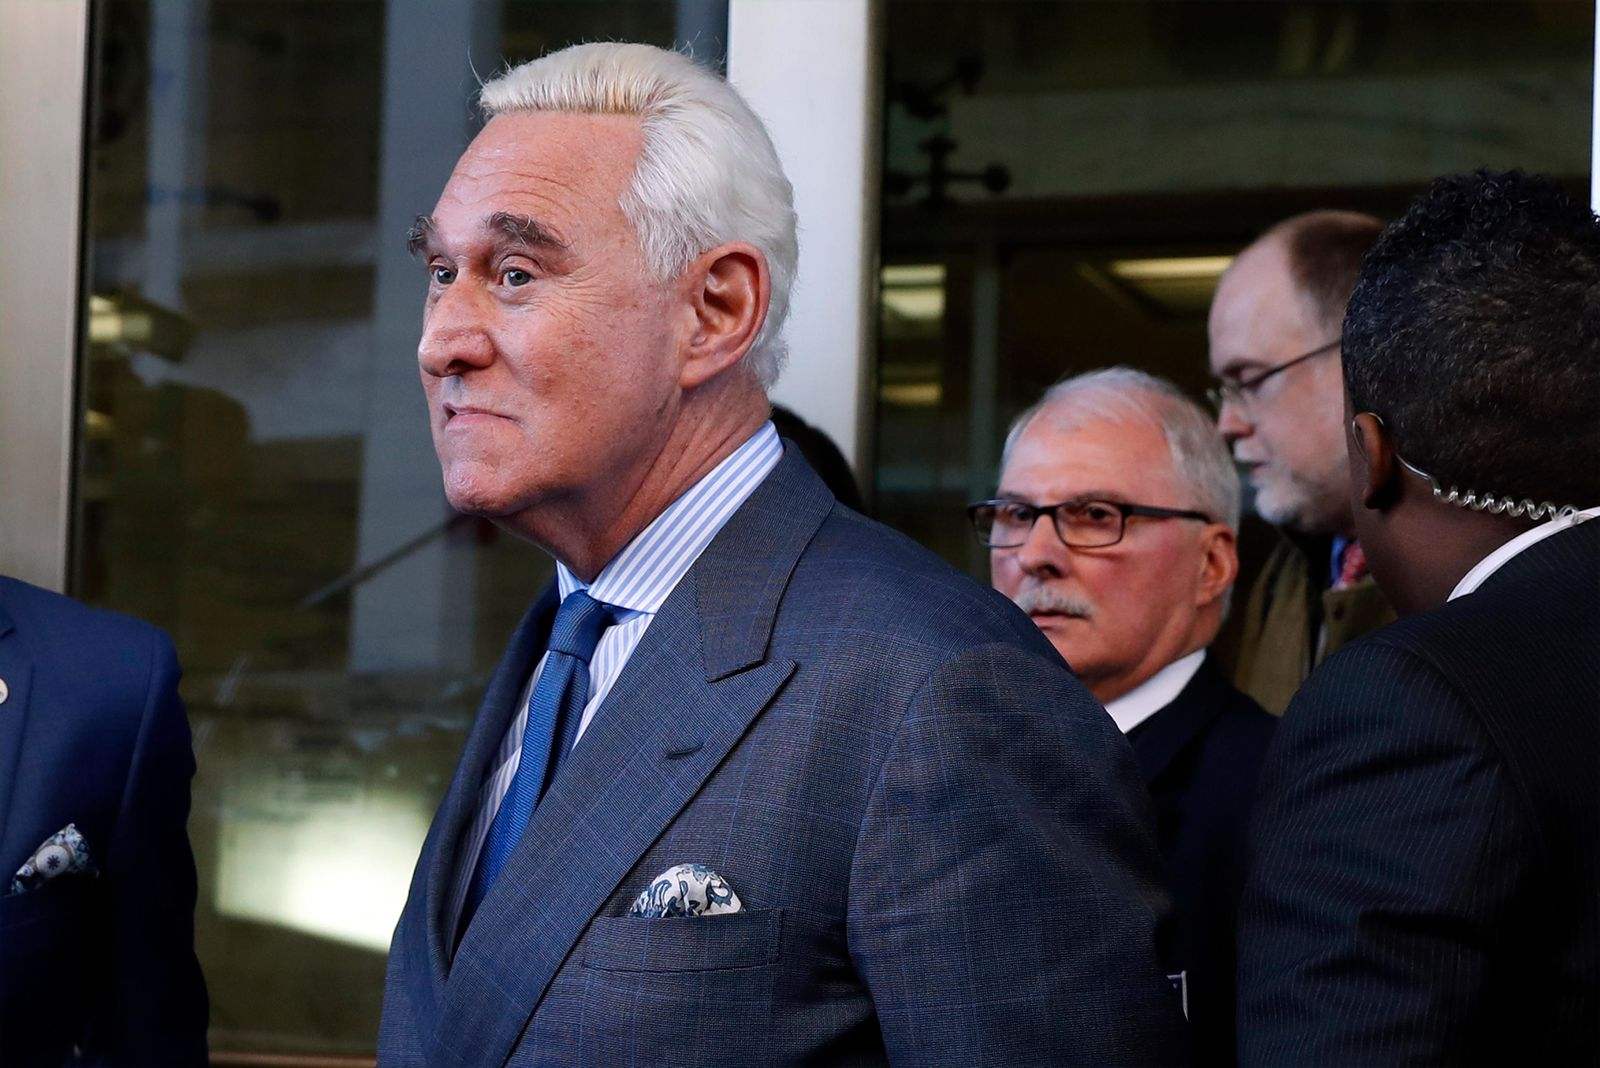 In this Feb. 21, 2019, photo, former campaign adviser for President Donald Trump, Roger Stone, leaves federal court in Washington. (AP Photo/Jacquelyn Martin)